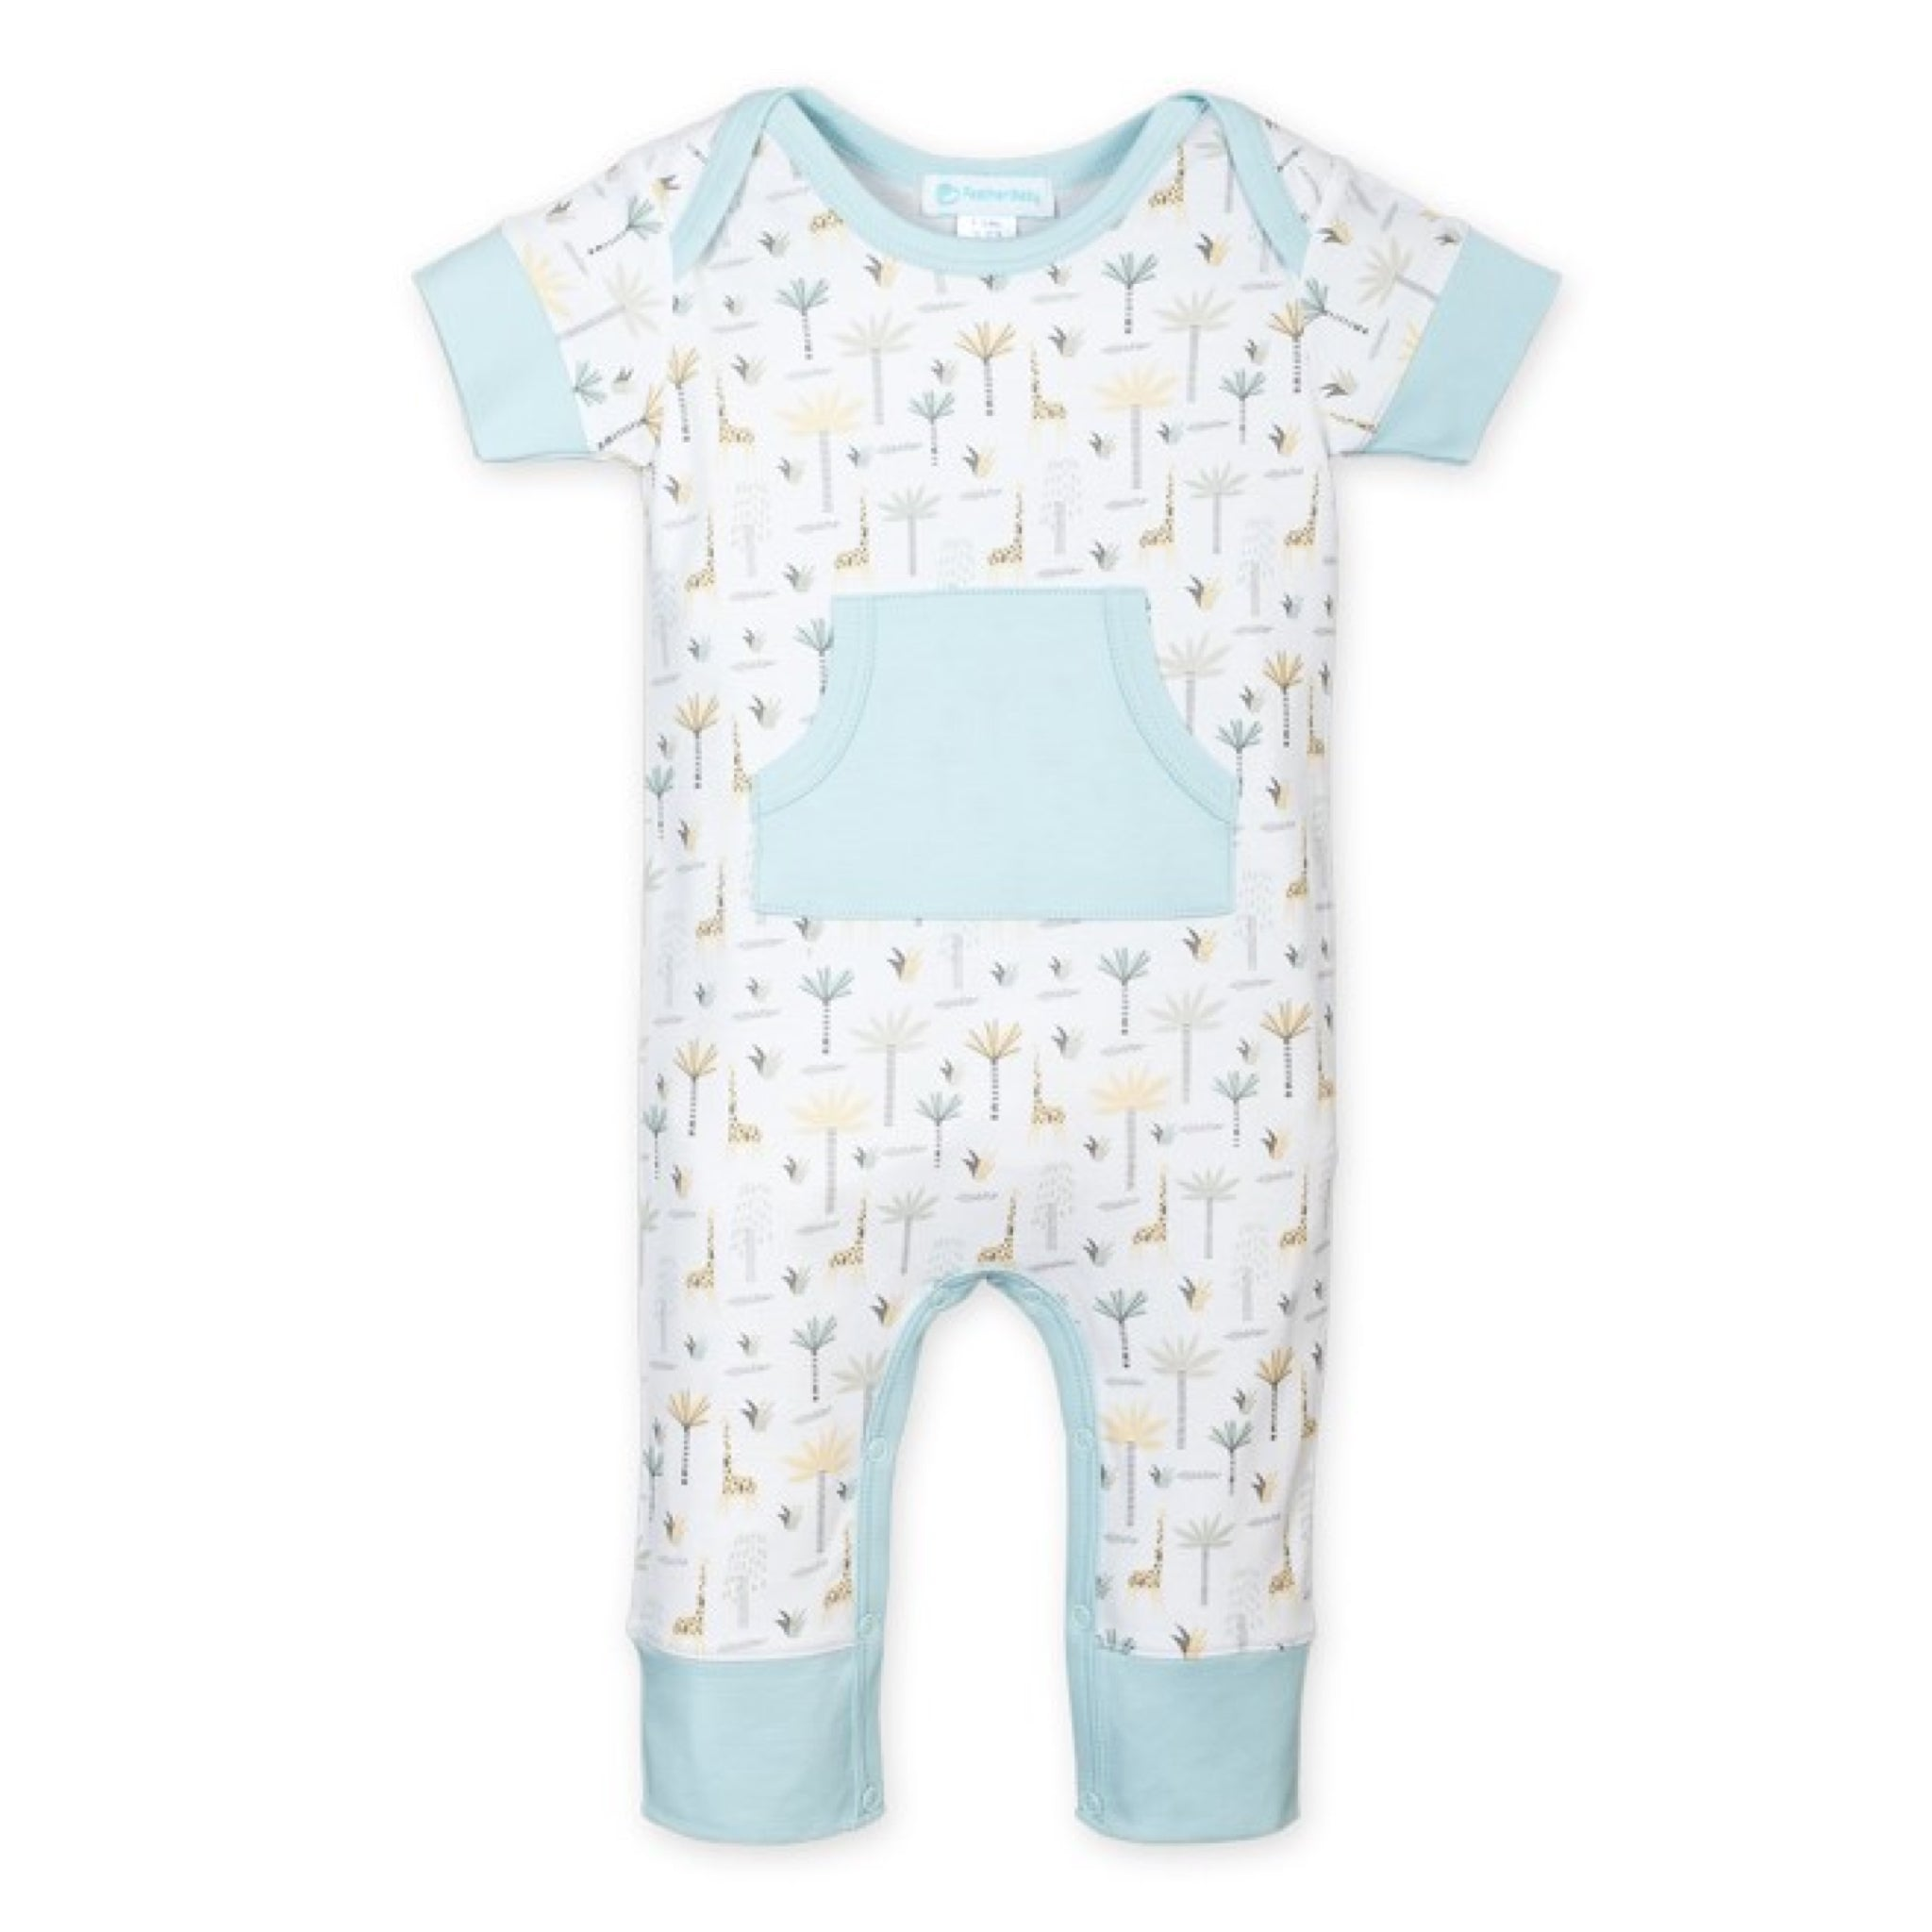 Palms and Giraffes on White Kangaroo Romper (Baby Boy)